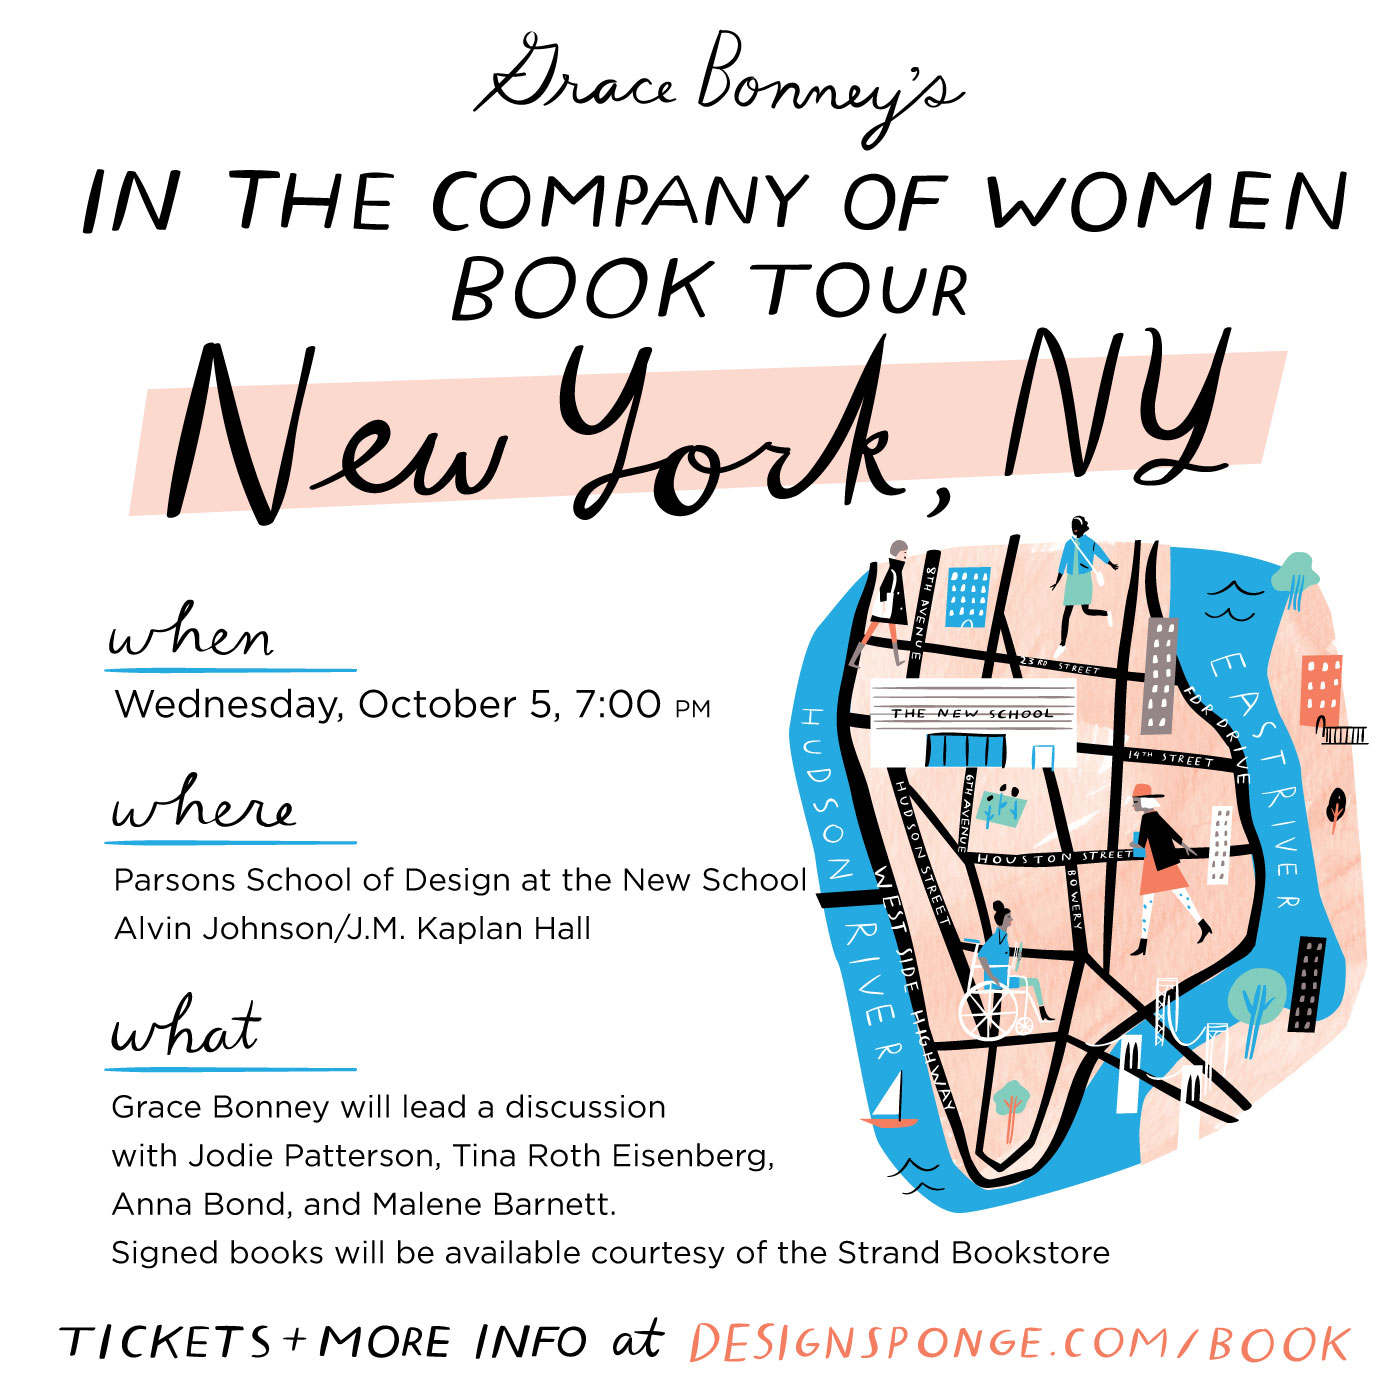 itcow_booktour_promos_cities_ny